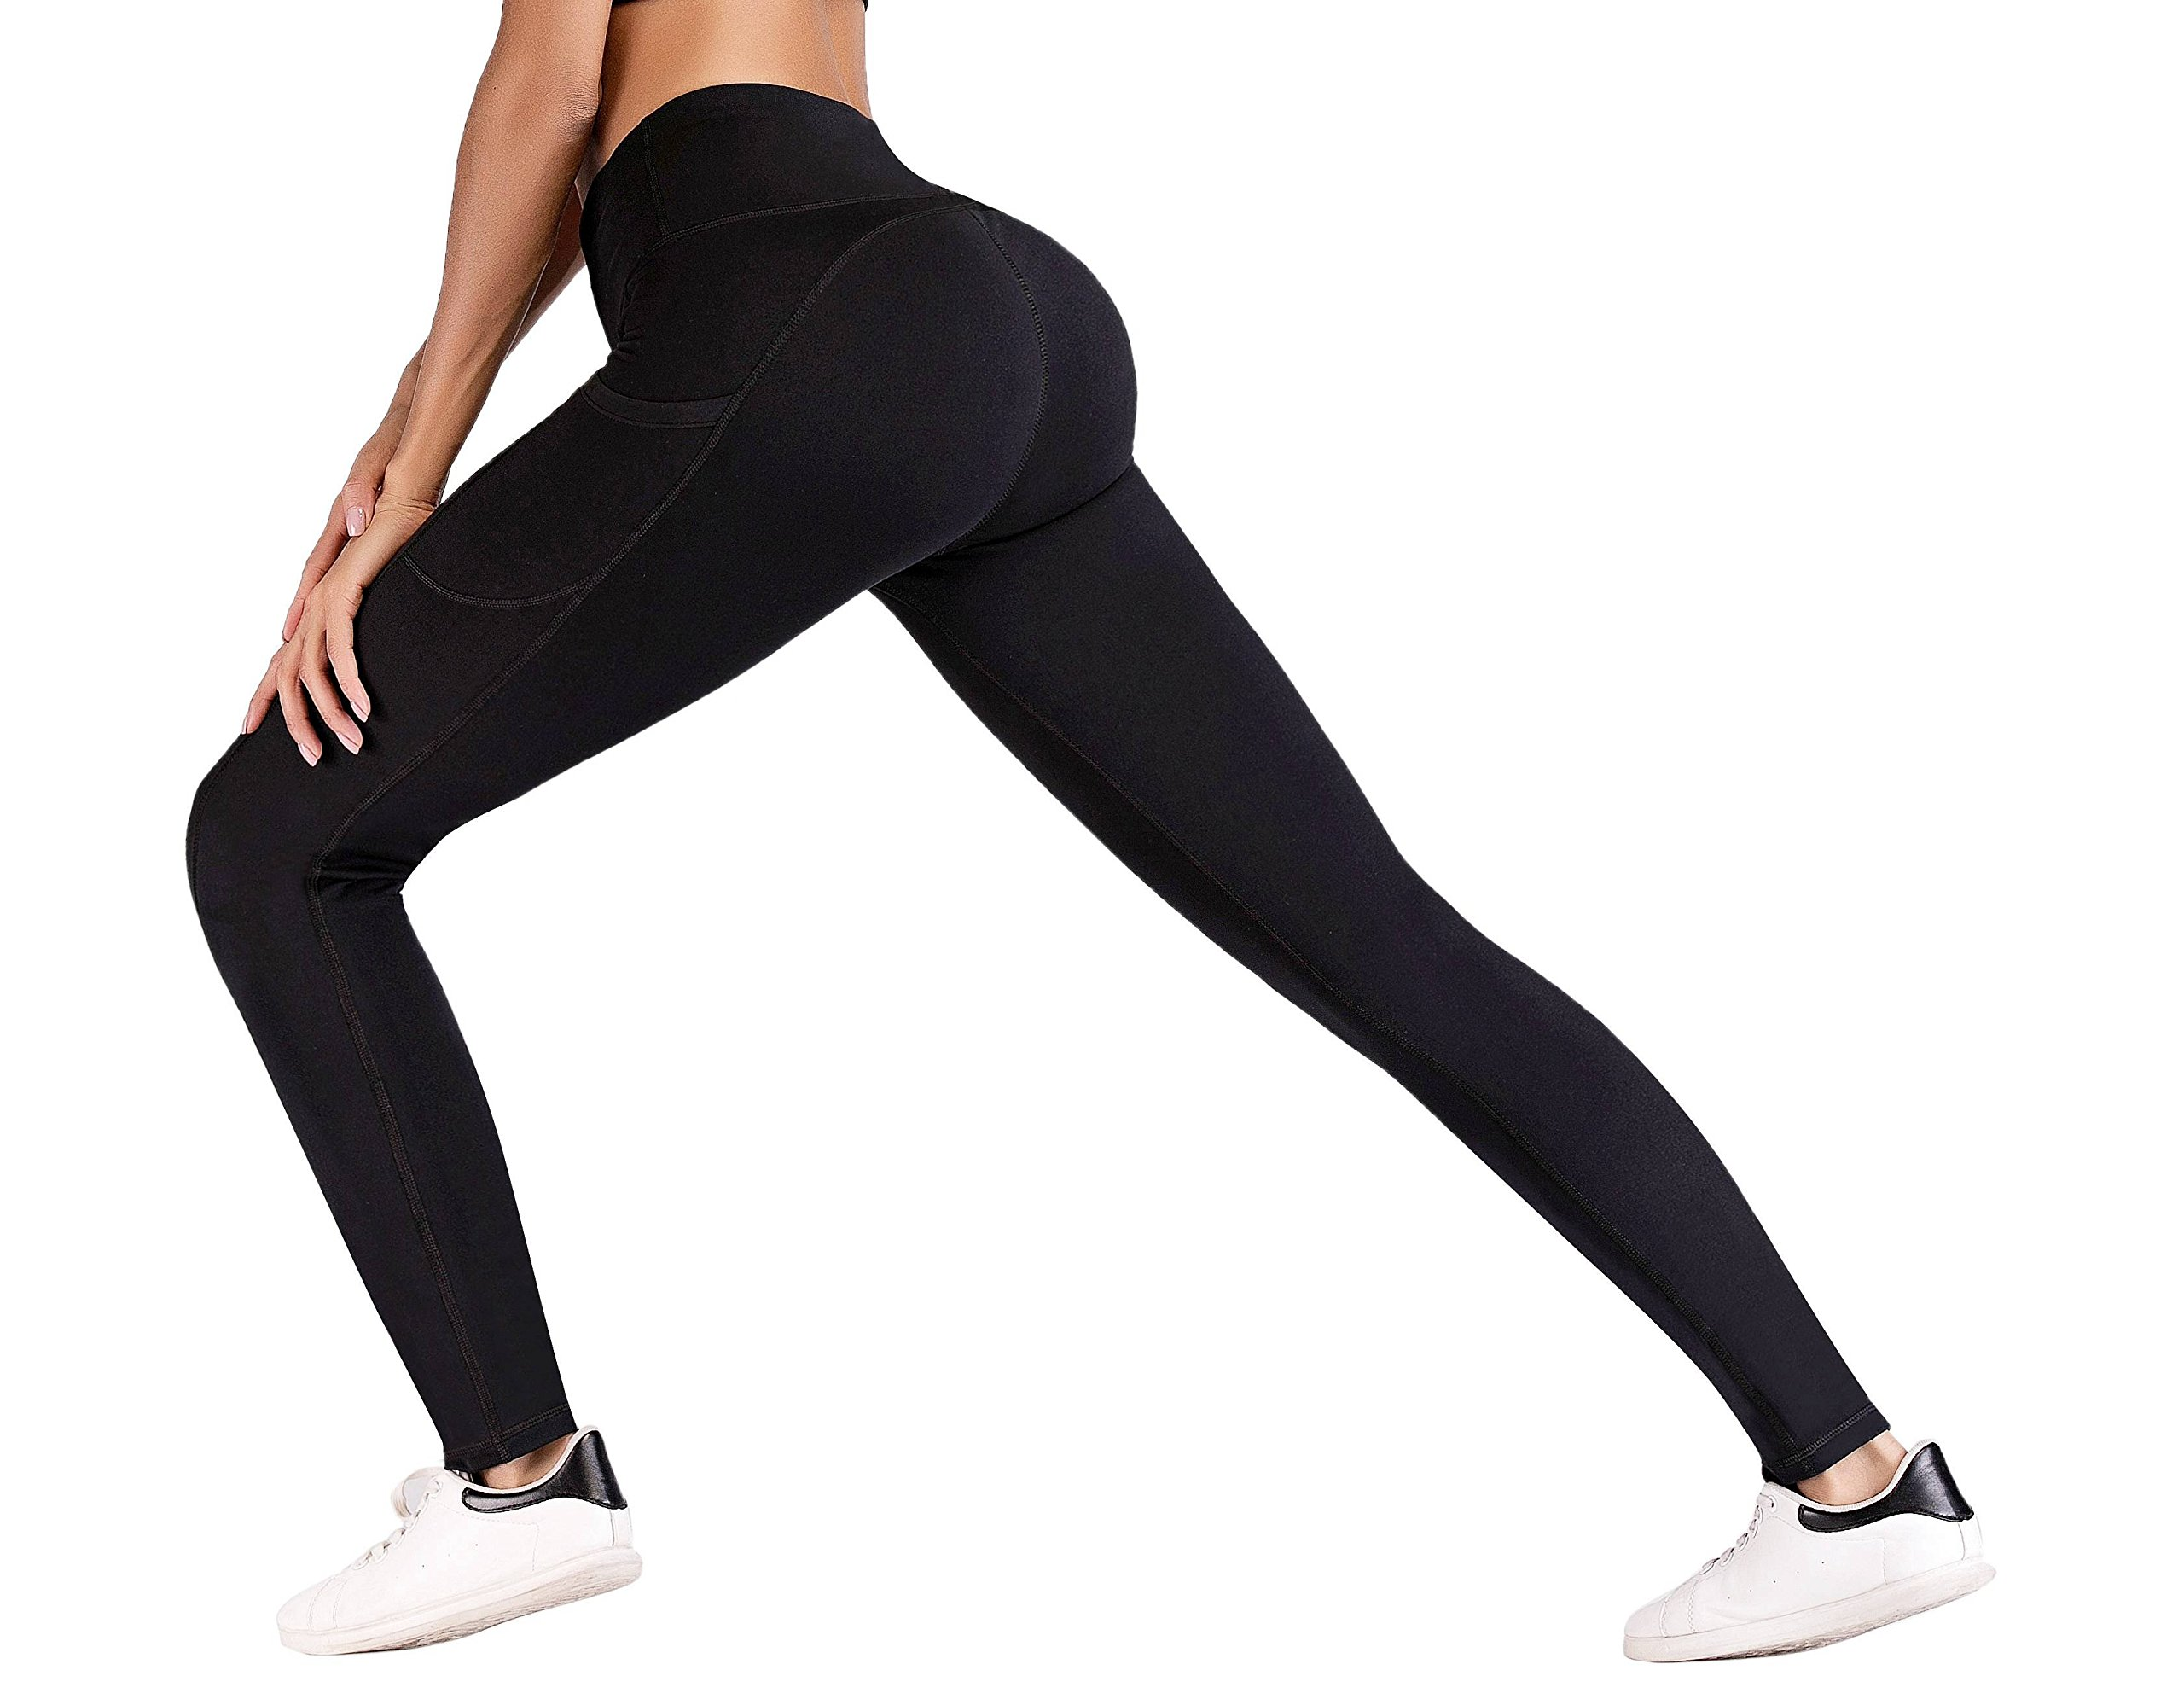 0942098ec5766 IUGA Yoga Pants with Pockets, Tummy Control, Workout Running Leggings with  Pockets for Women